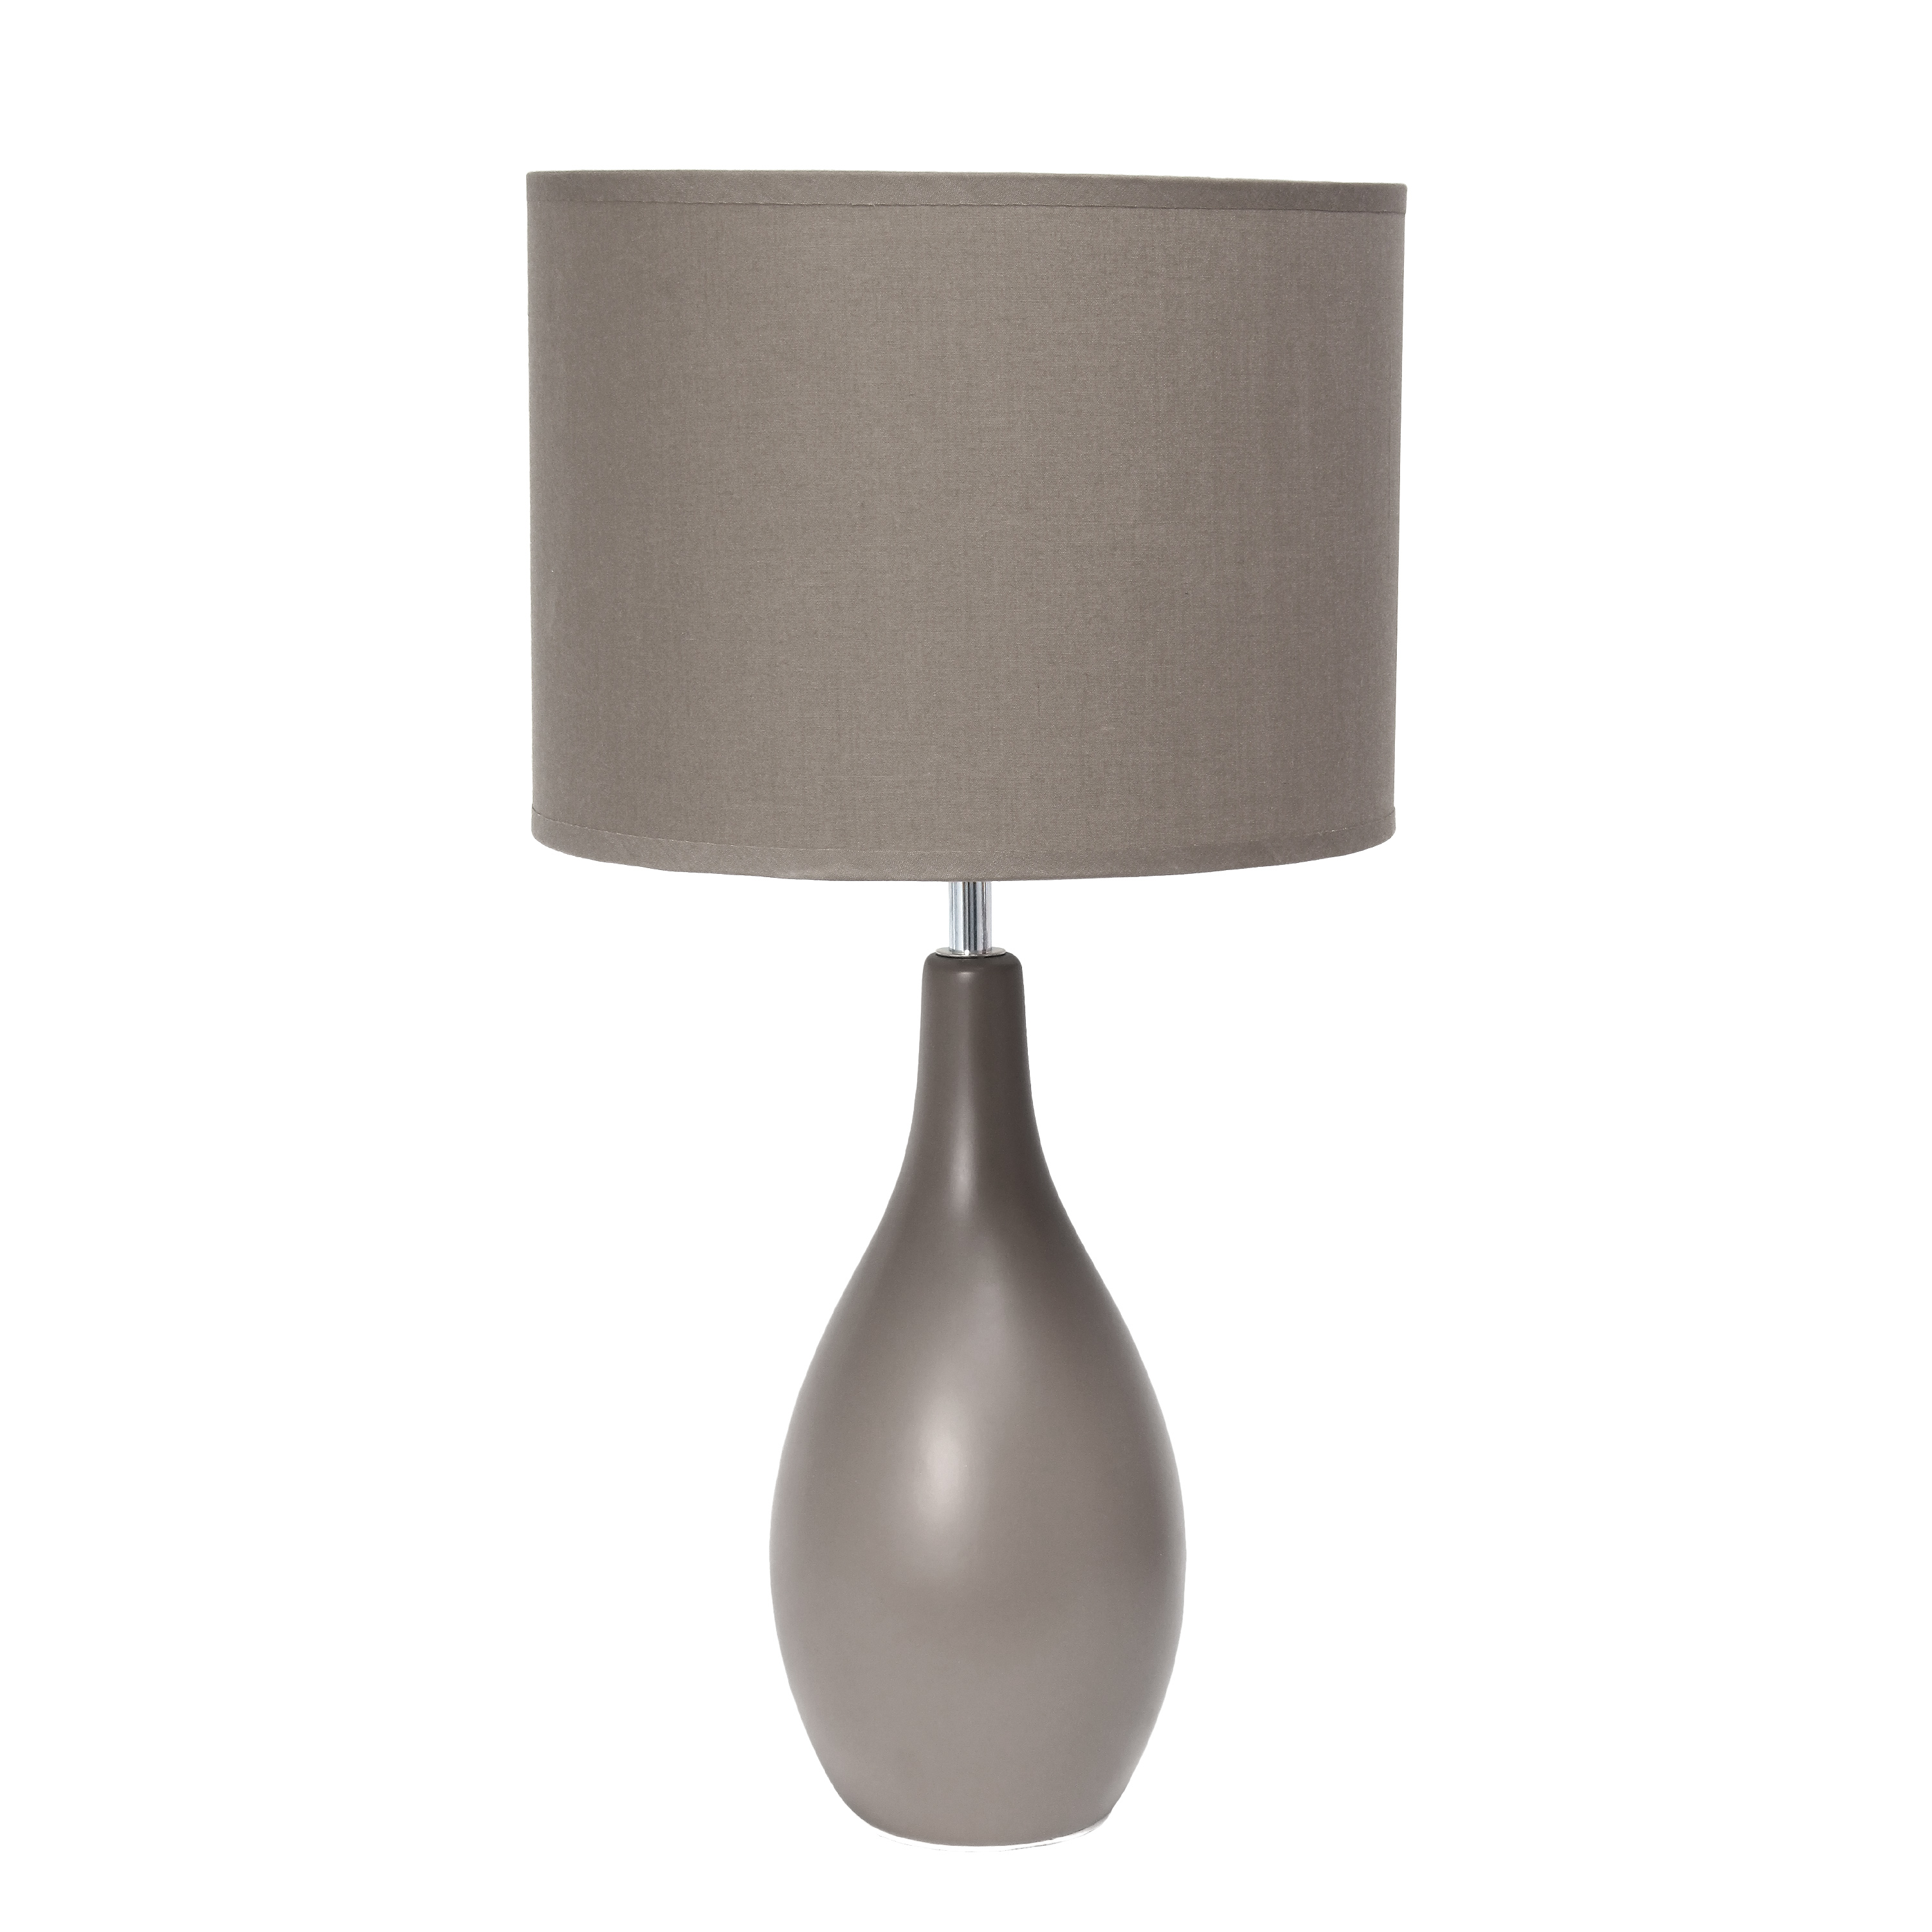 Simple Designs Oval Bowling Pin Base Ceramic Table Lamp, Gray